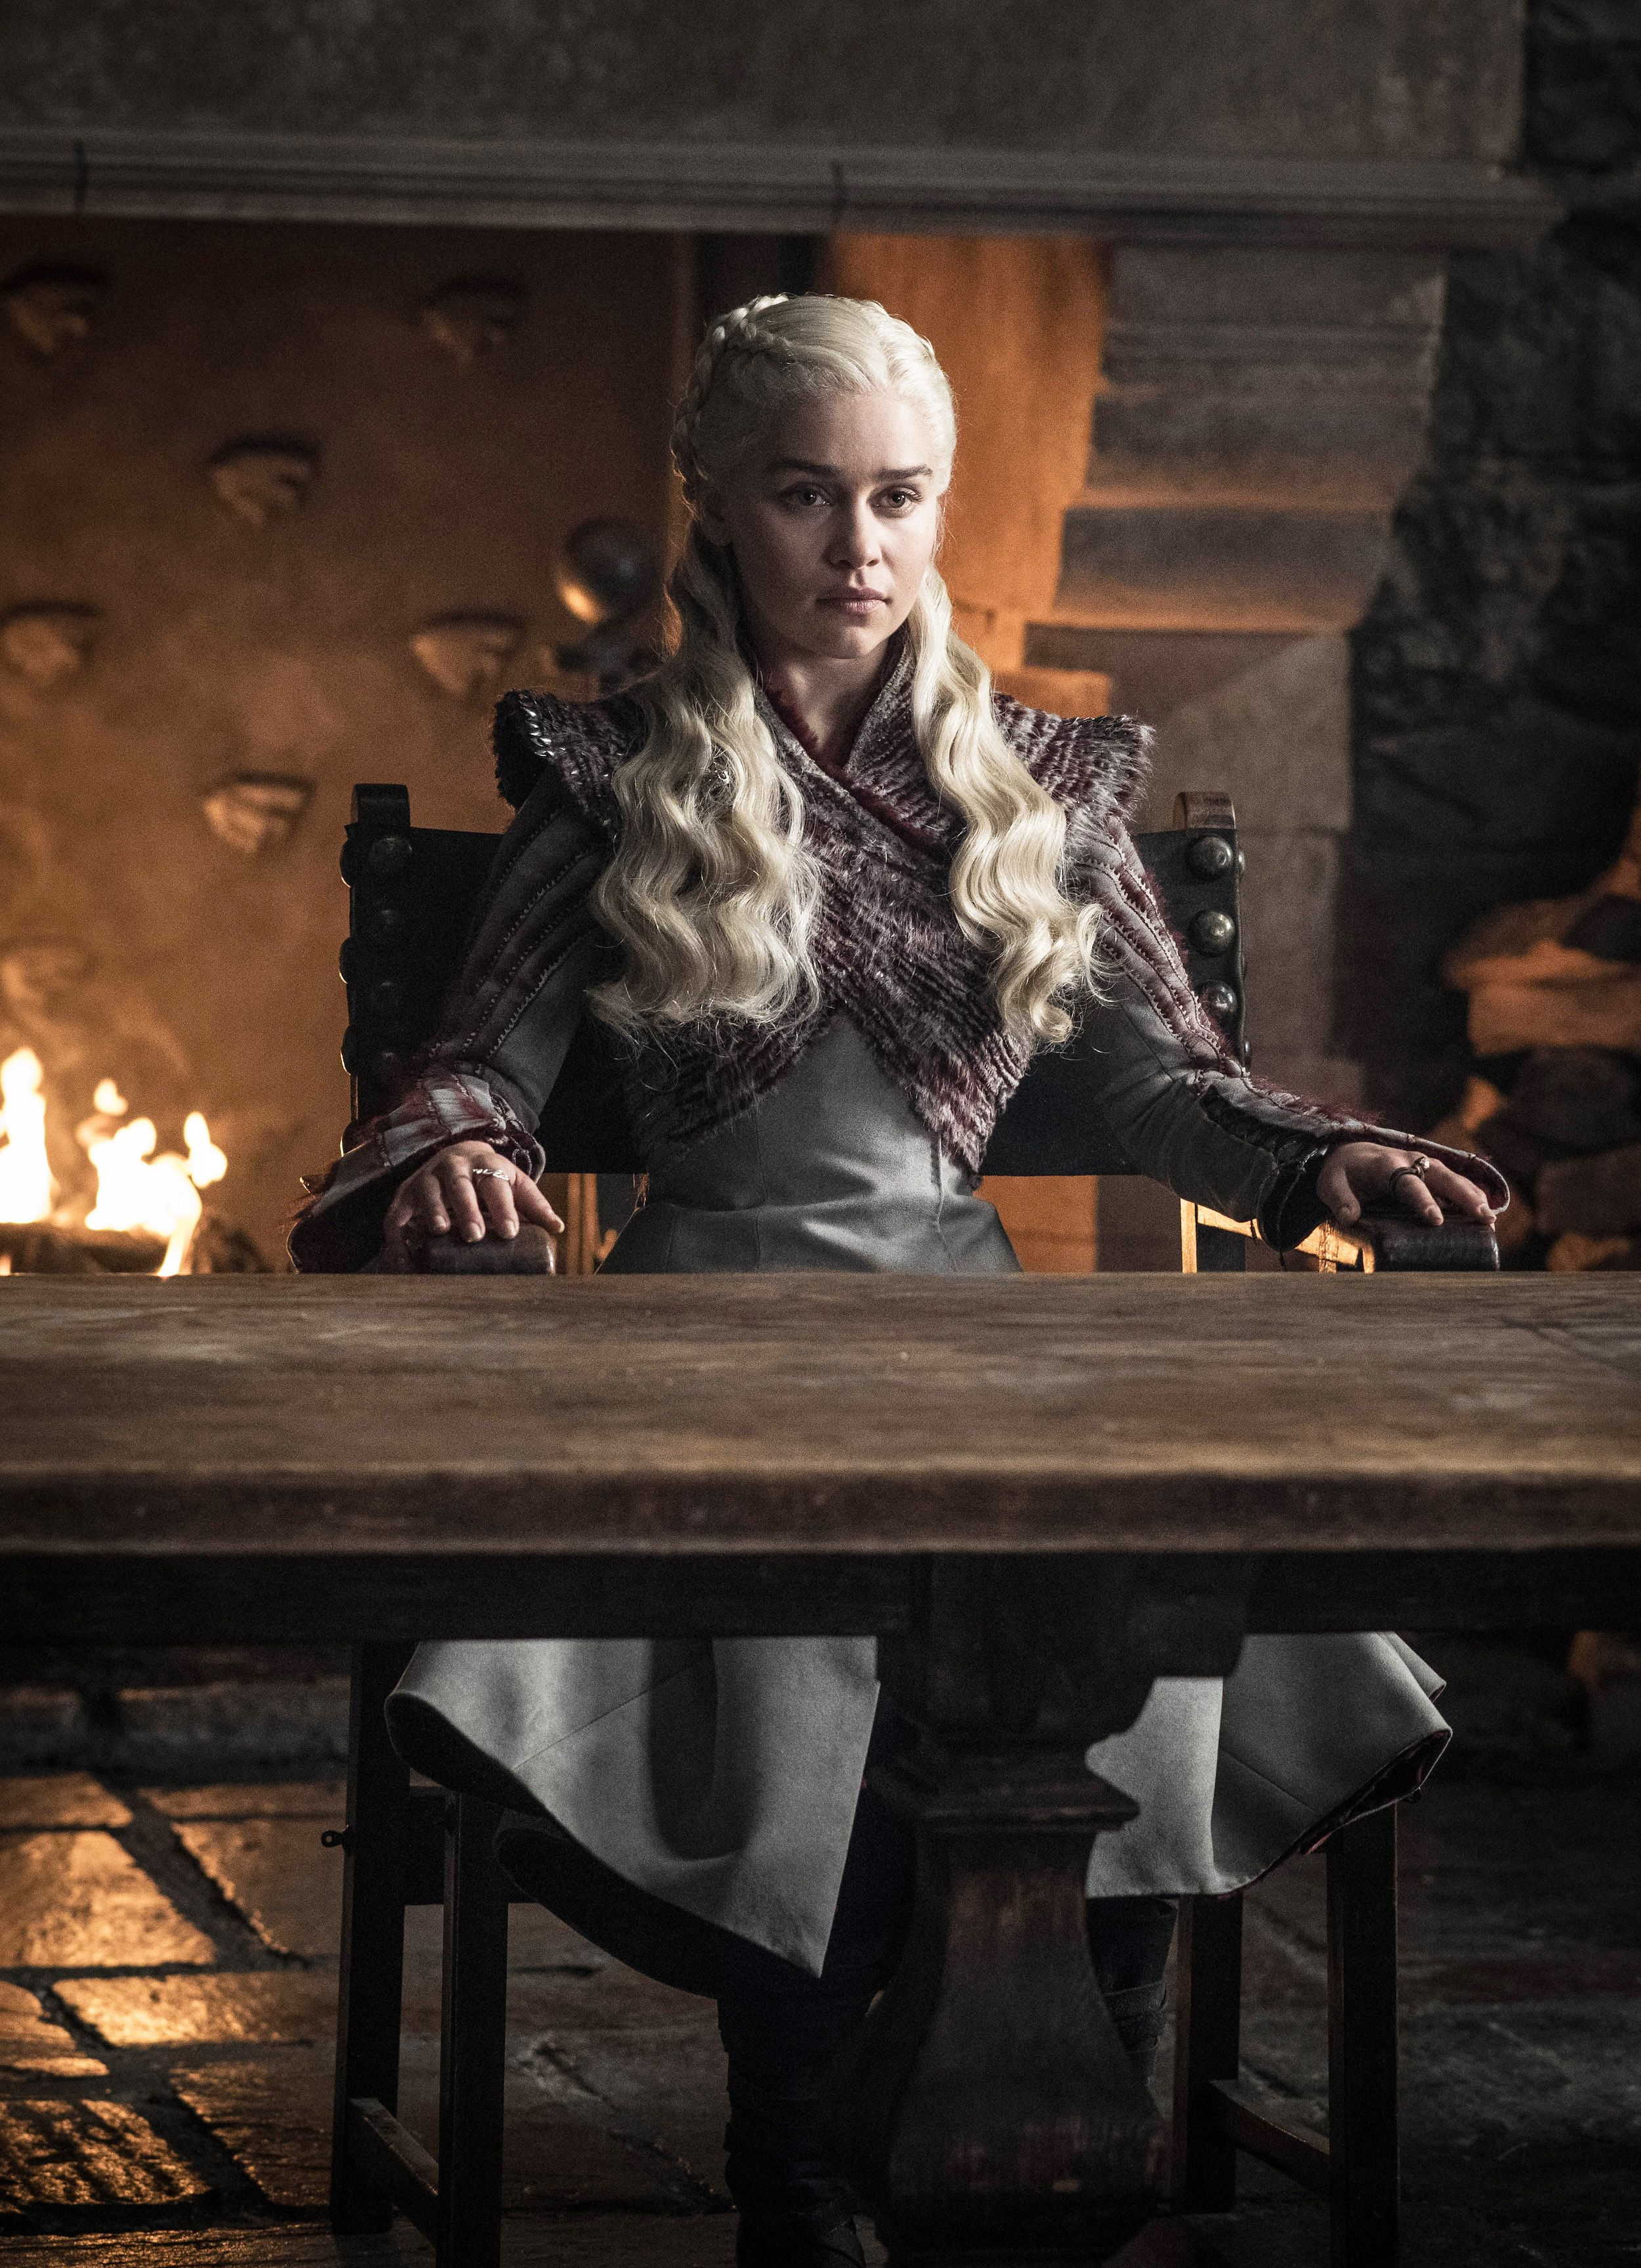 When Will Game of Thrones End?